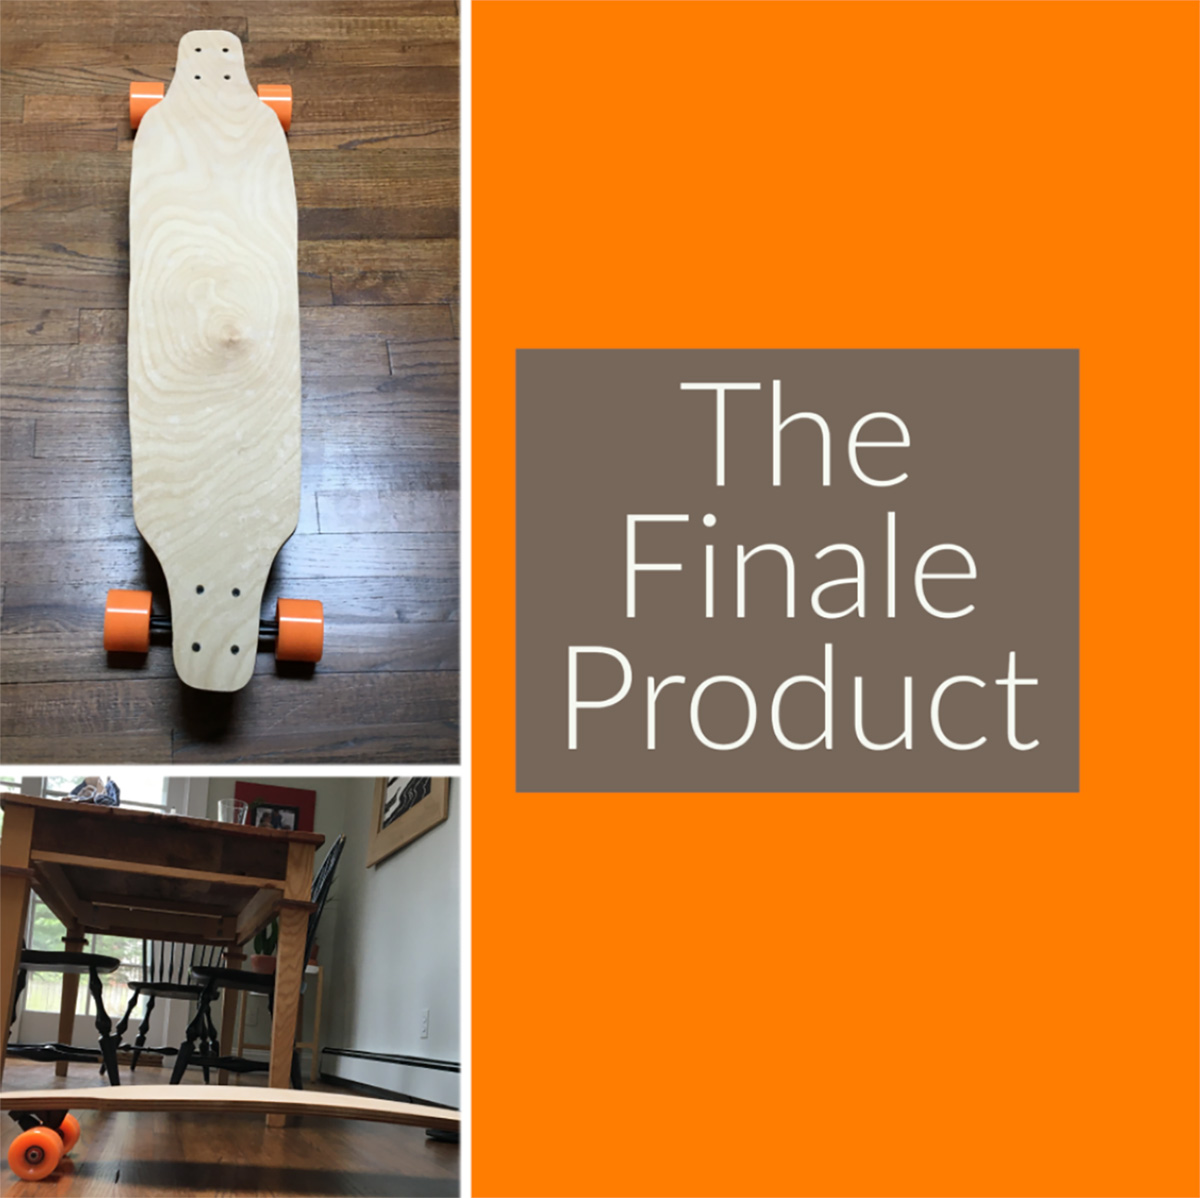 Student's completed Longboard